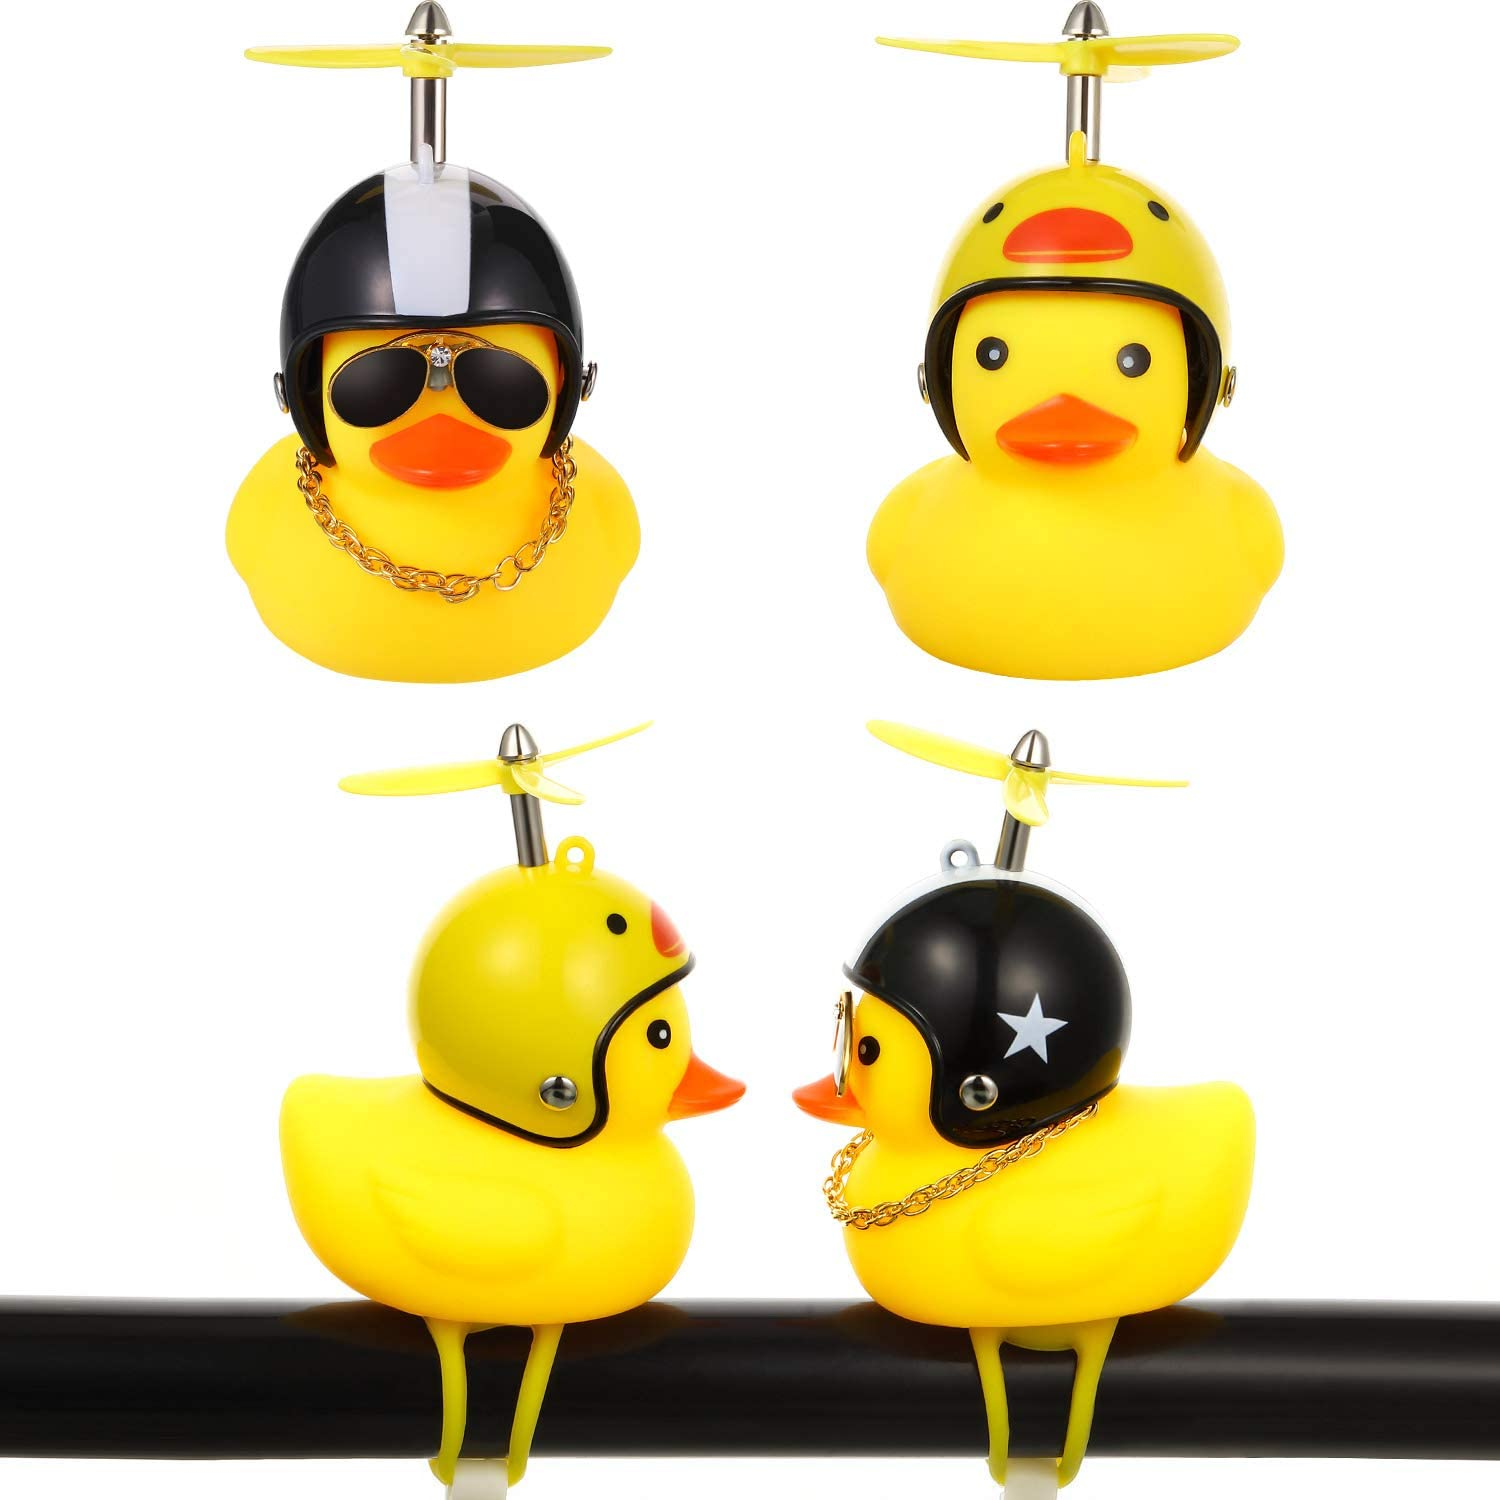 2 Pieces Kids Bike Bells Duck Bicycle Lights Bell Squeeze Horn Bicycle Bell Lovely Duck Bike Bell with LED Light, Rubber Duck Bicycle Accessories for Kids Adults Sport Outdoor